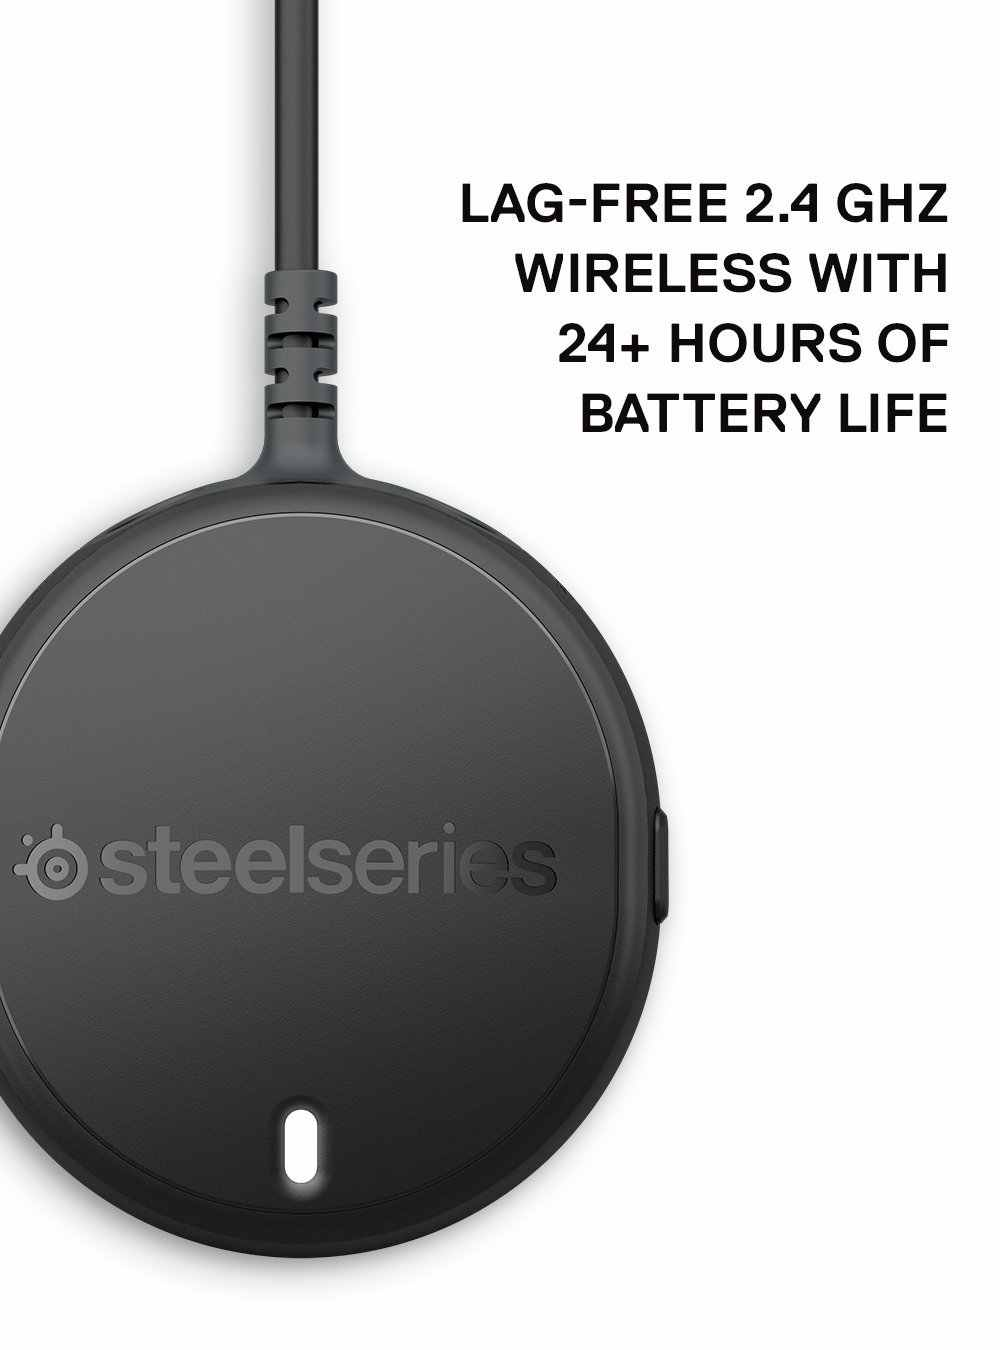 SteelSeries Arctis 7 Lag-Free Wireless Gaming Headset with DTS Headphone:X  7 1 Surround for PC, Playstation 4, VR, Mac